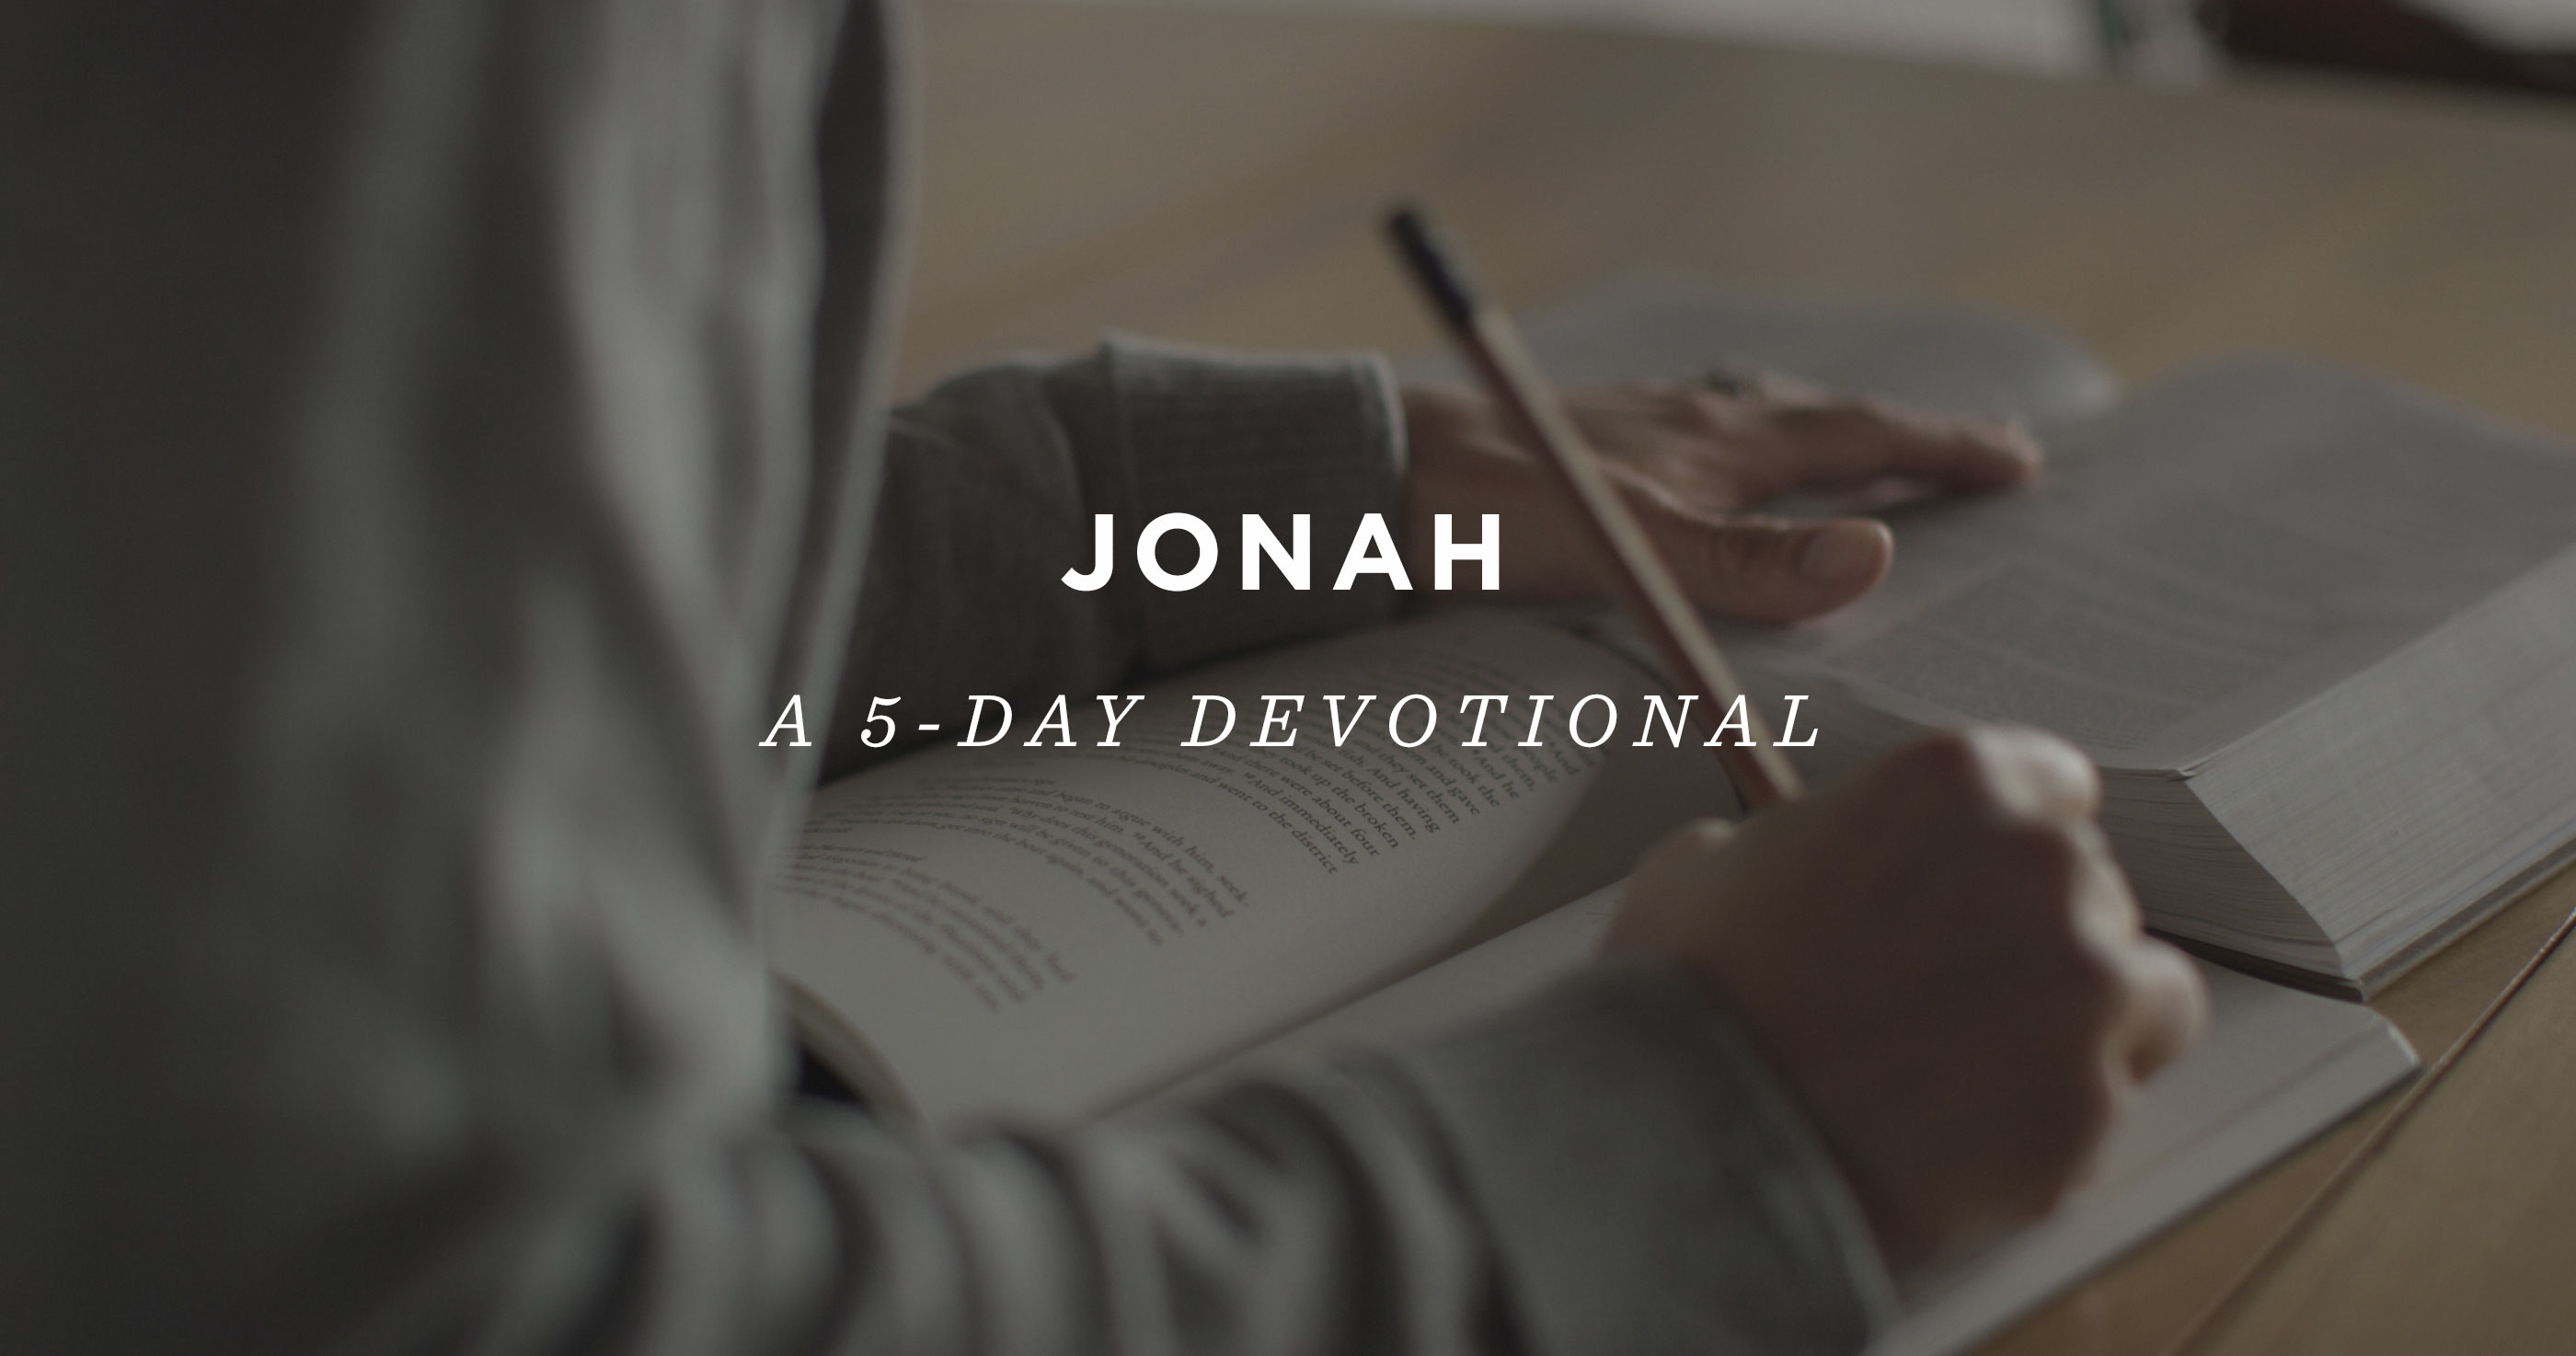 Jonah: A 5-Day Devotional